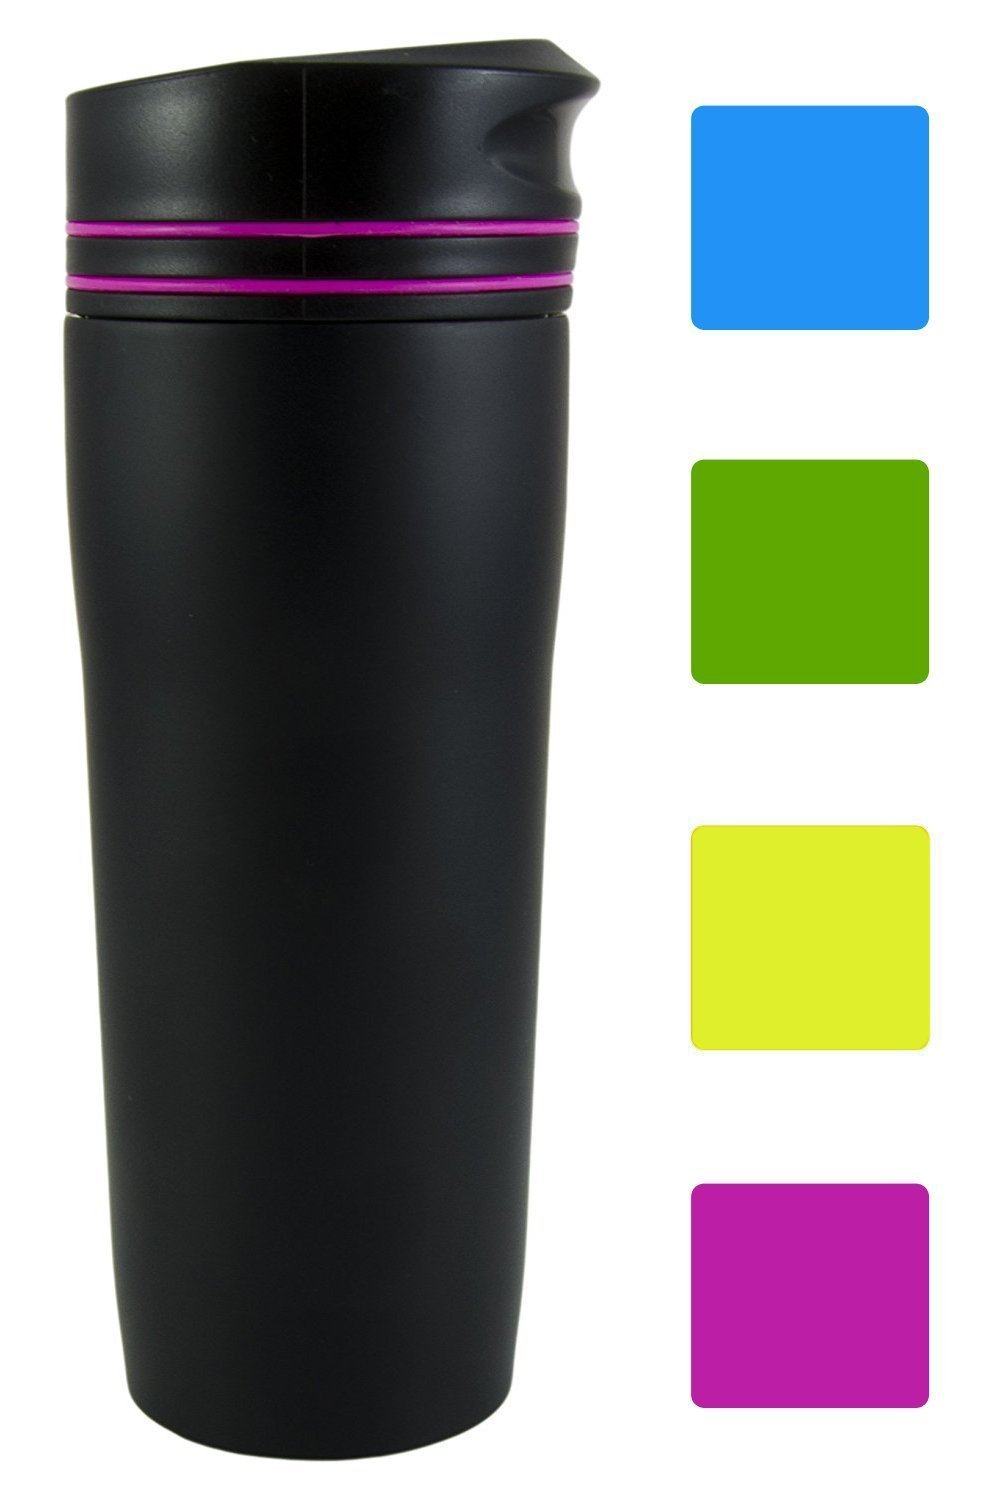 Premium Quality Black Matte Double Wall Vacuum Insulated Stainless Steel Travel Mug 100% Leakproof (380 ml, 13 oz) (Blue) EHoff